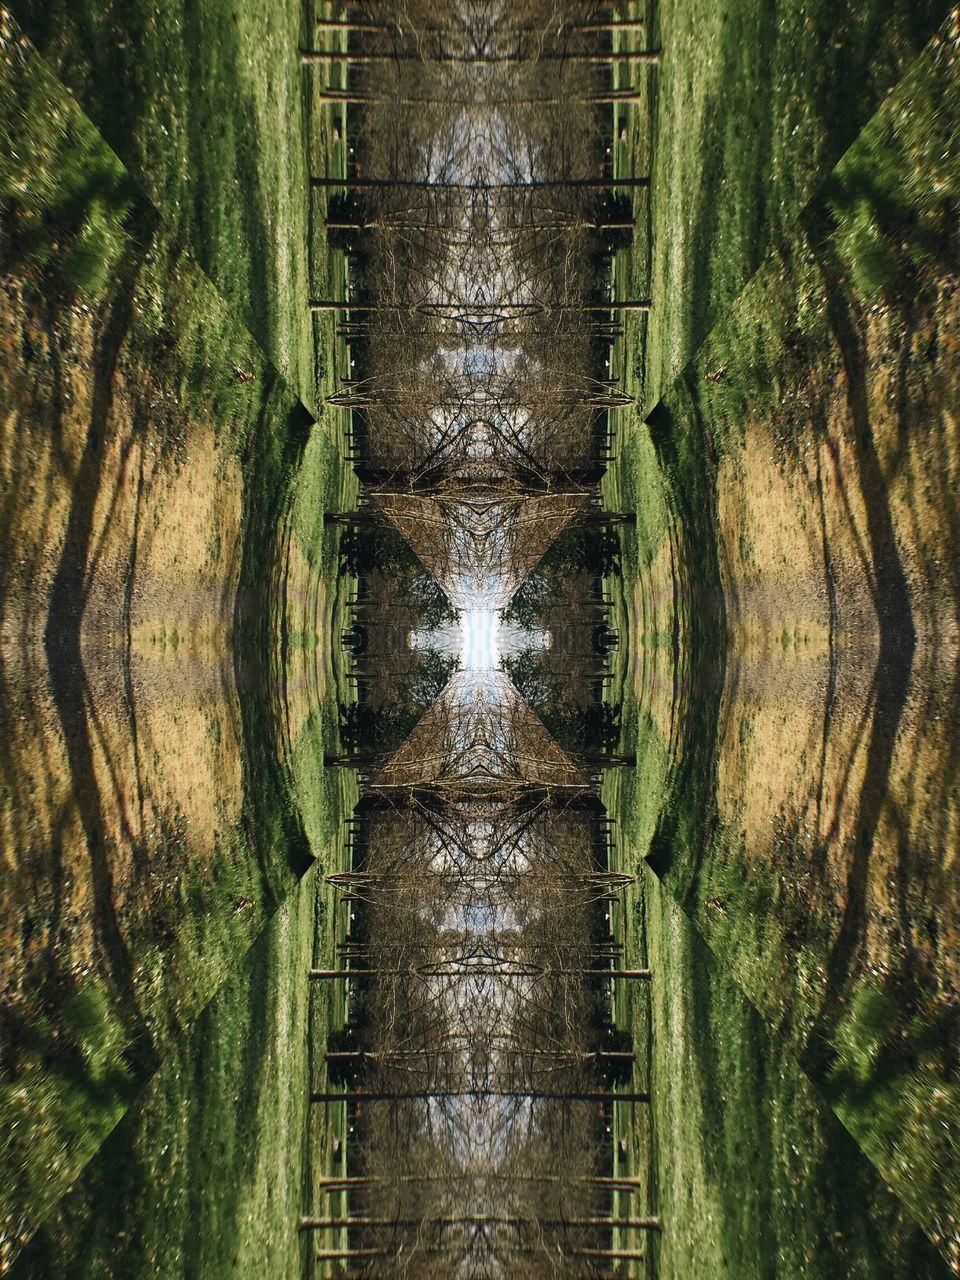 reflection, symmetry, water, no people, tree trunk, nature, tree, outdoors, day, grass